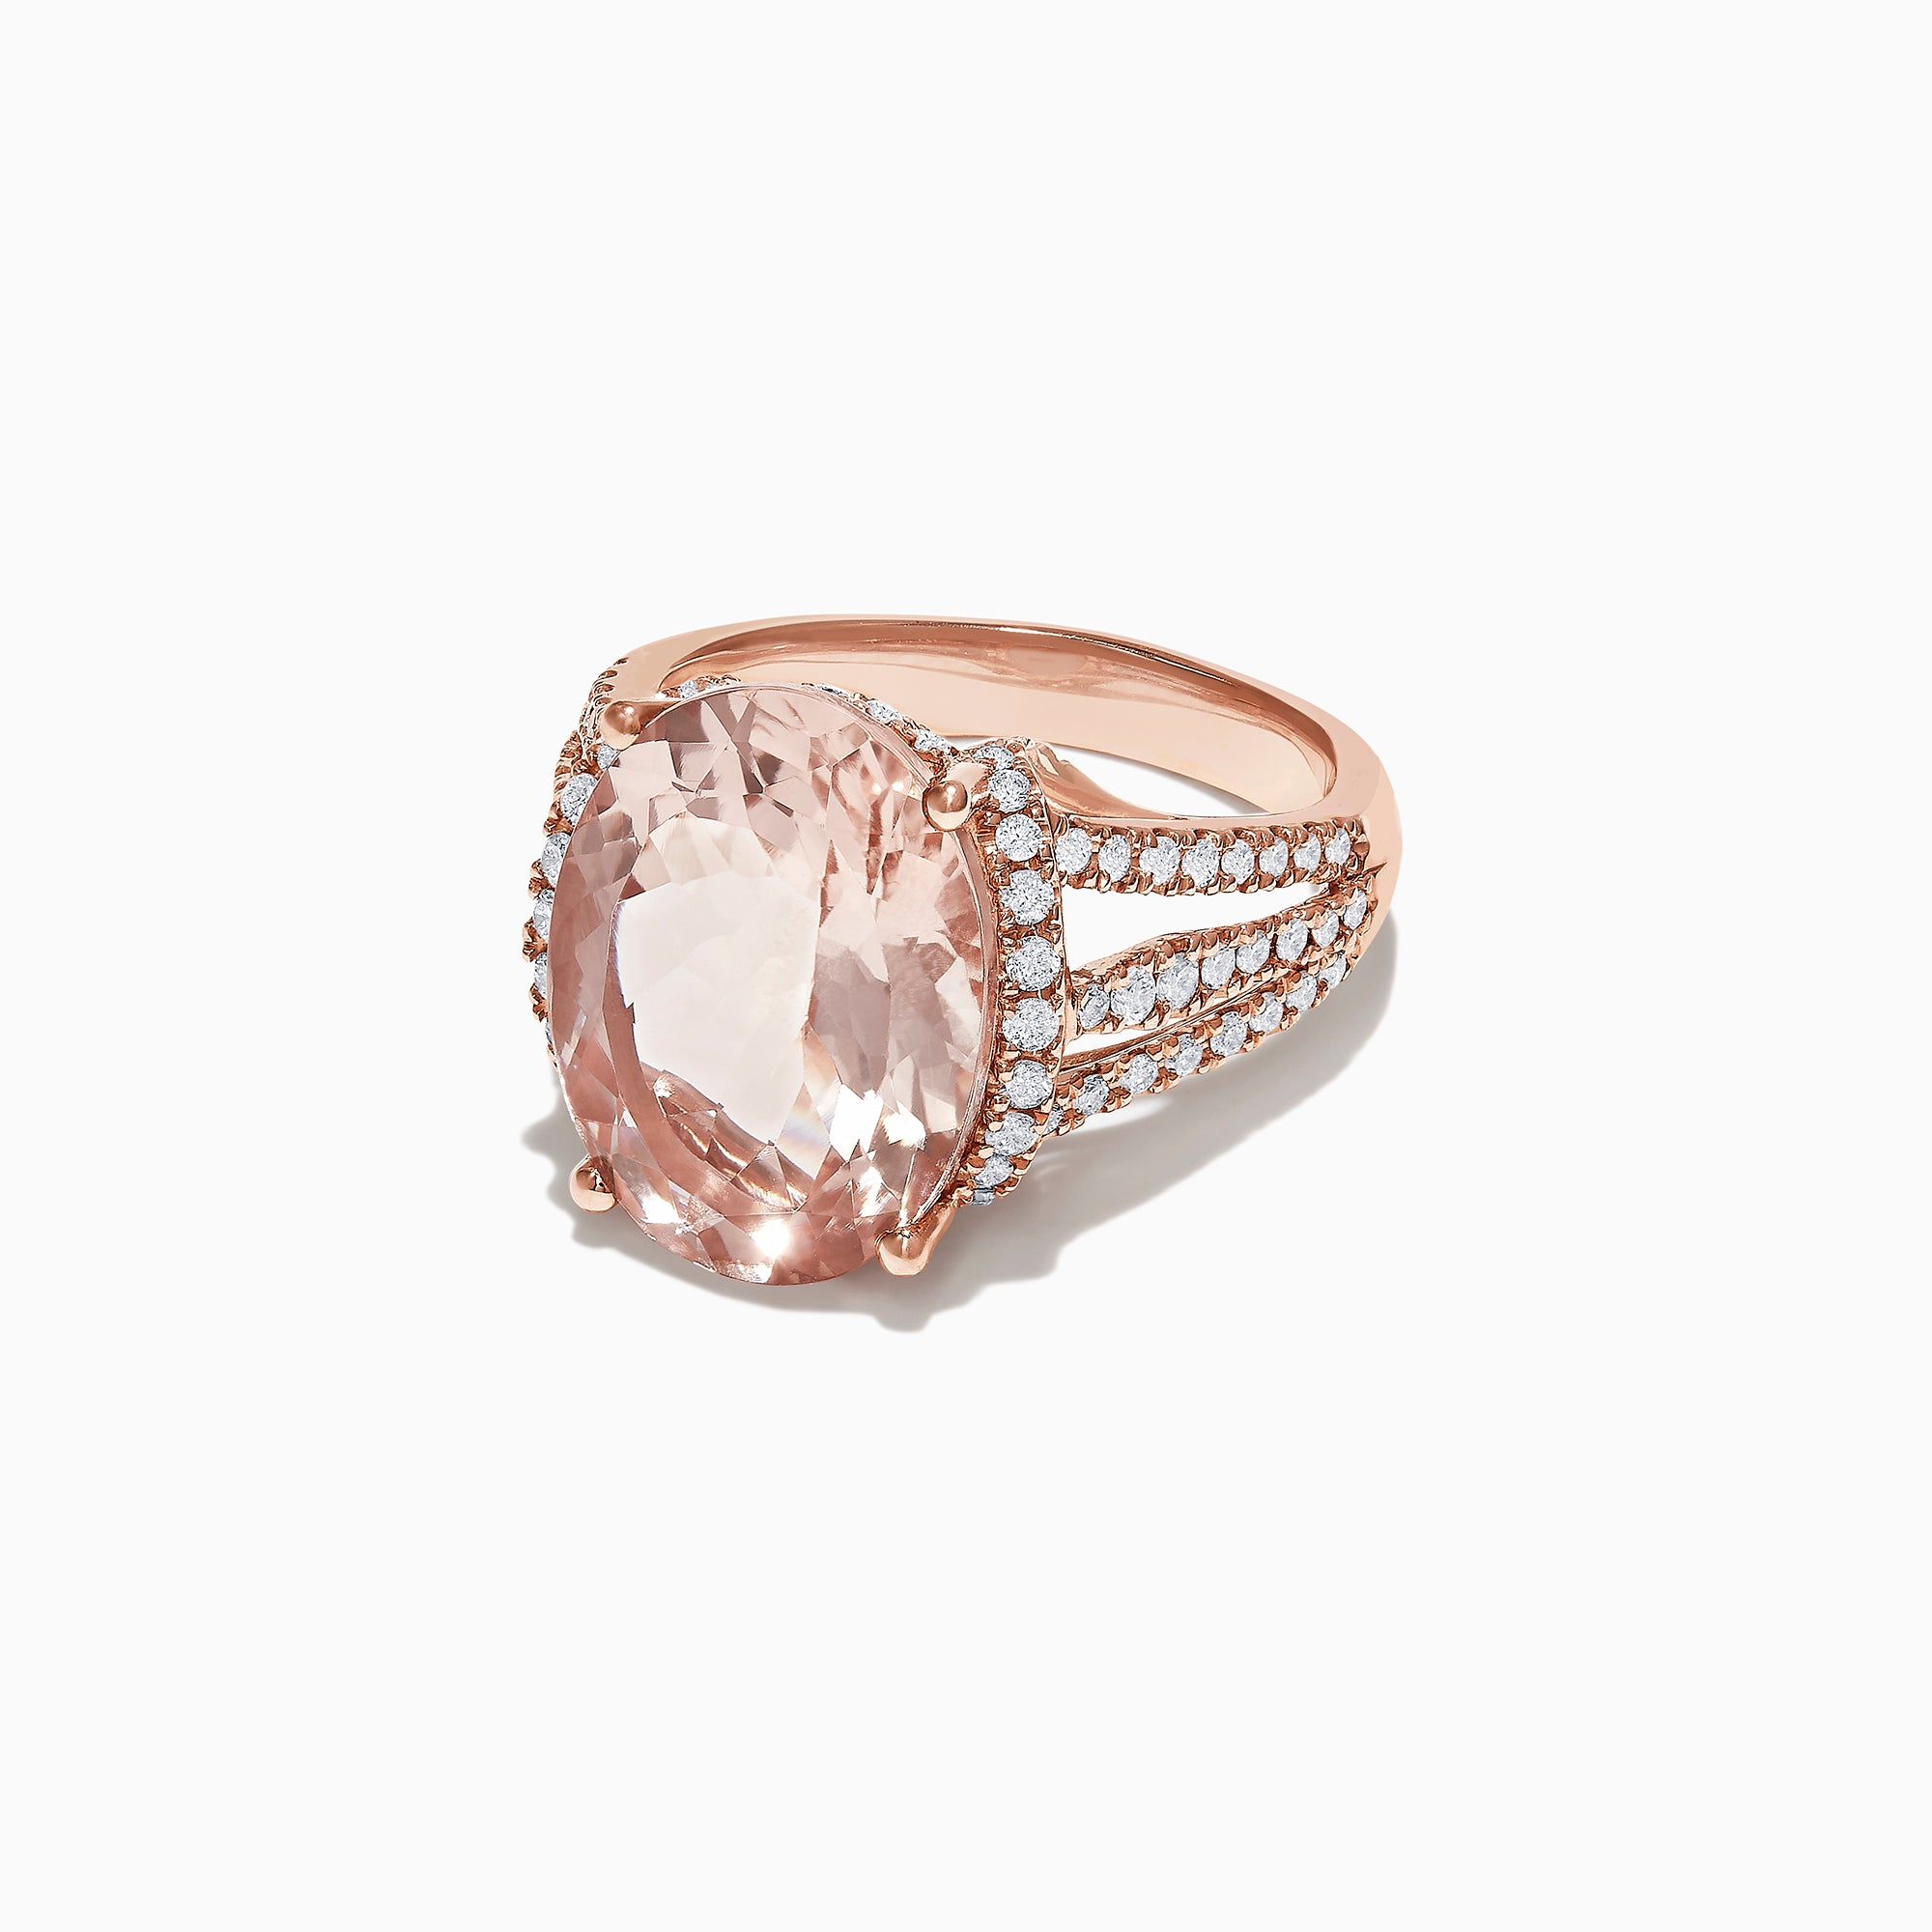 Effy Blush 14K Rose Gold Morganite and Diamond Cocktail Ring, 9.60 TCW